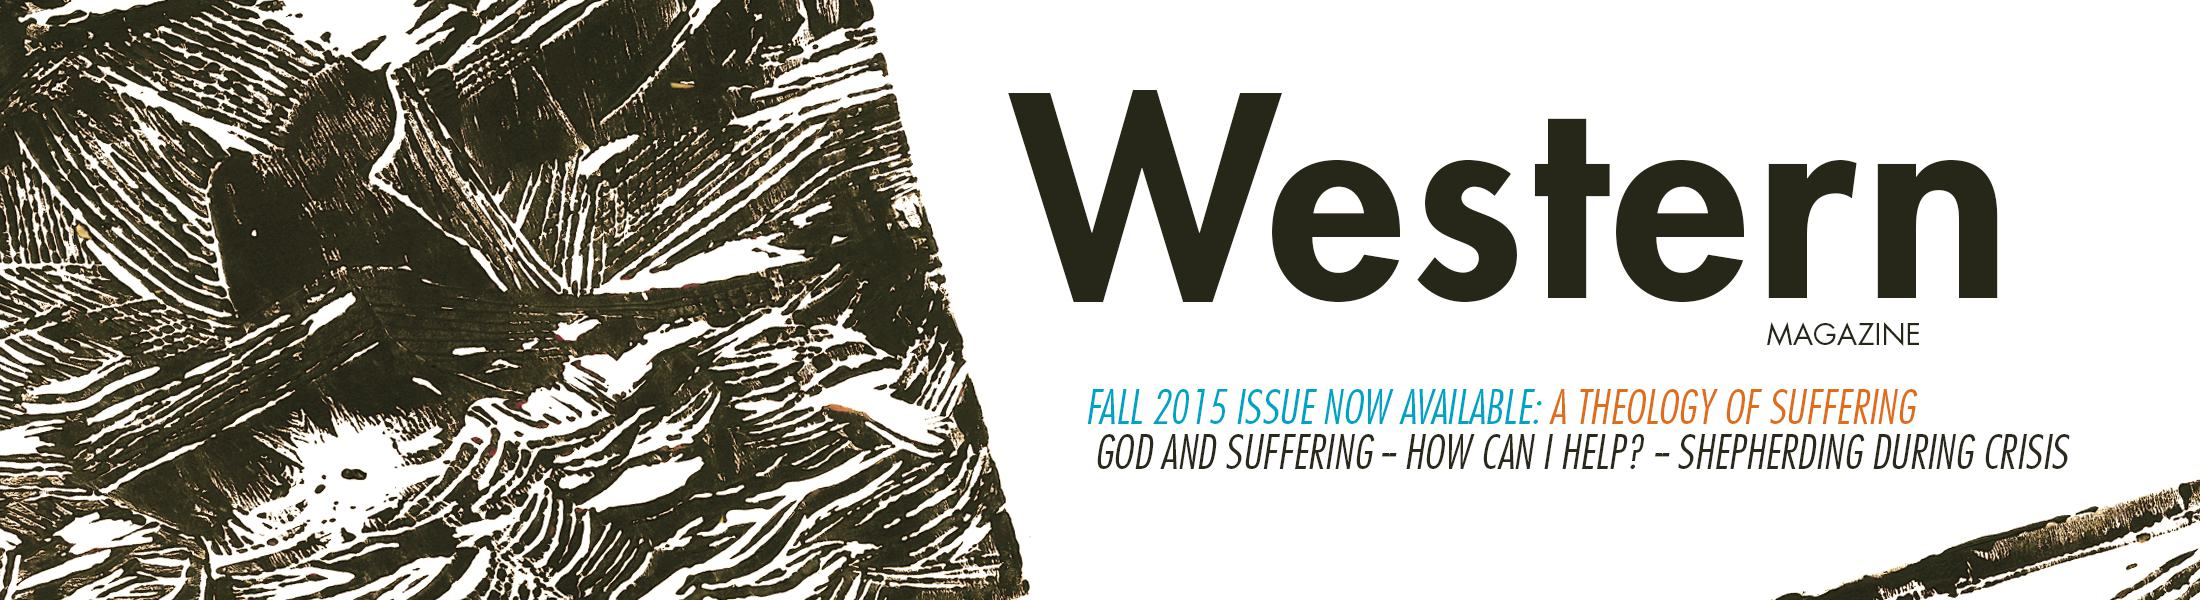 Western Magazine - Fall 2015 Issue